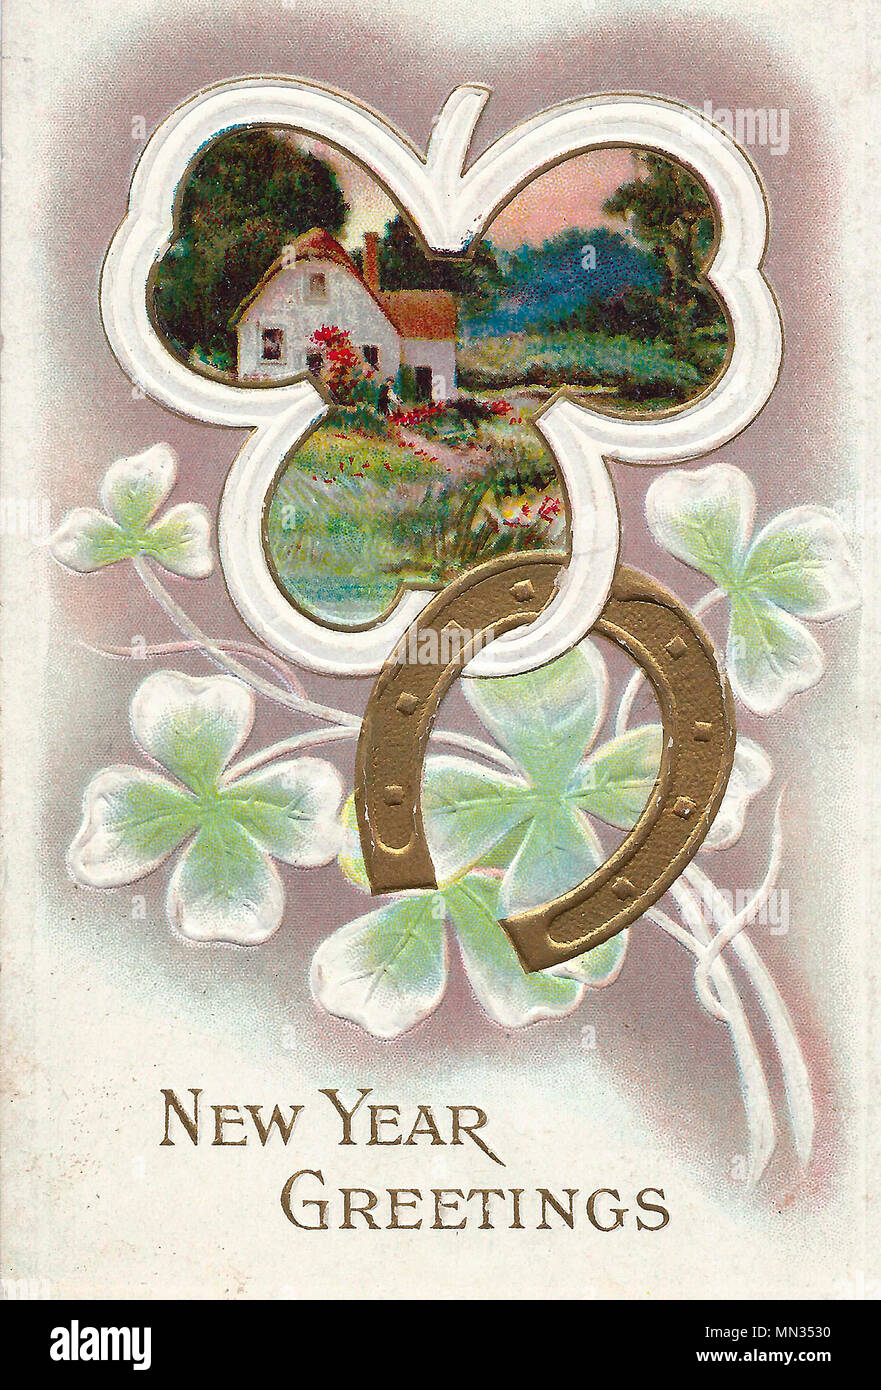 New Years Greetings A Vintage New Years Post Card Stock Photo